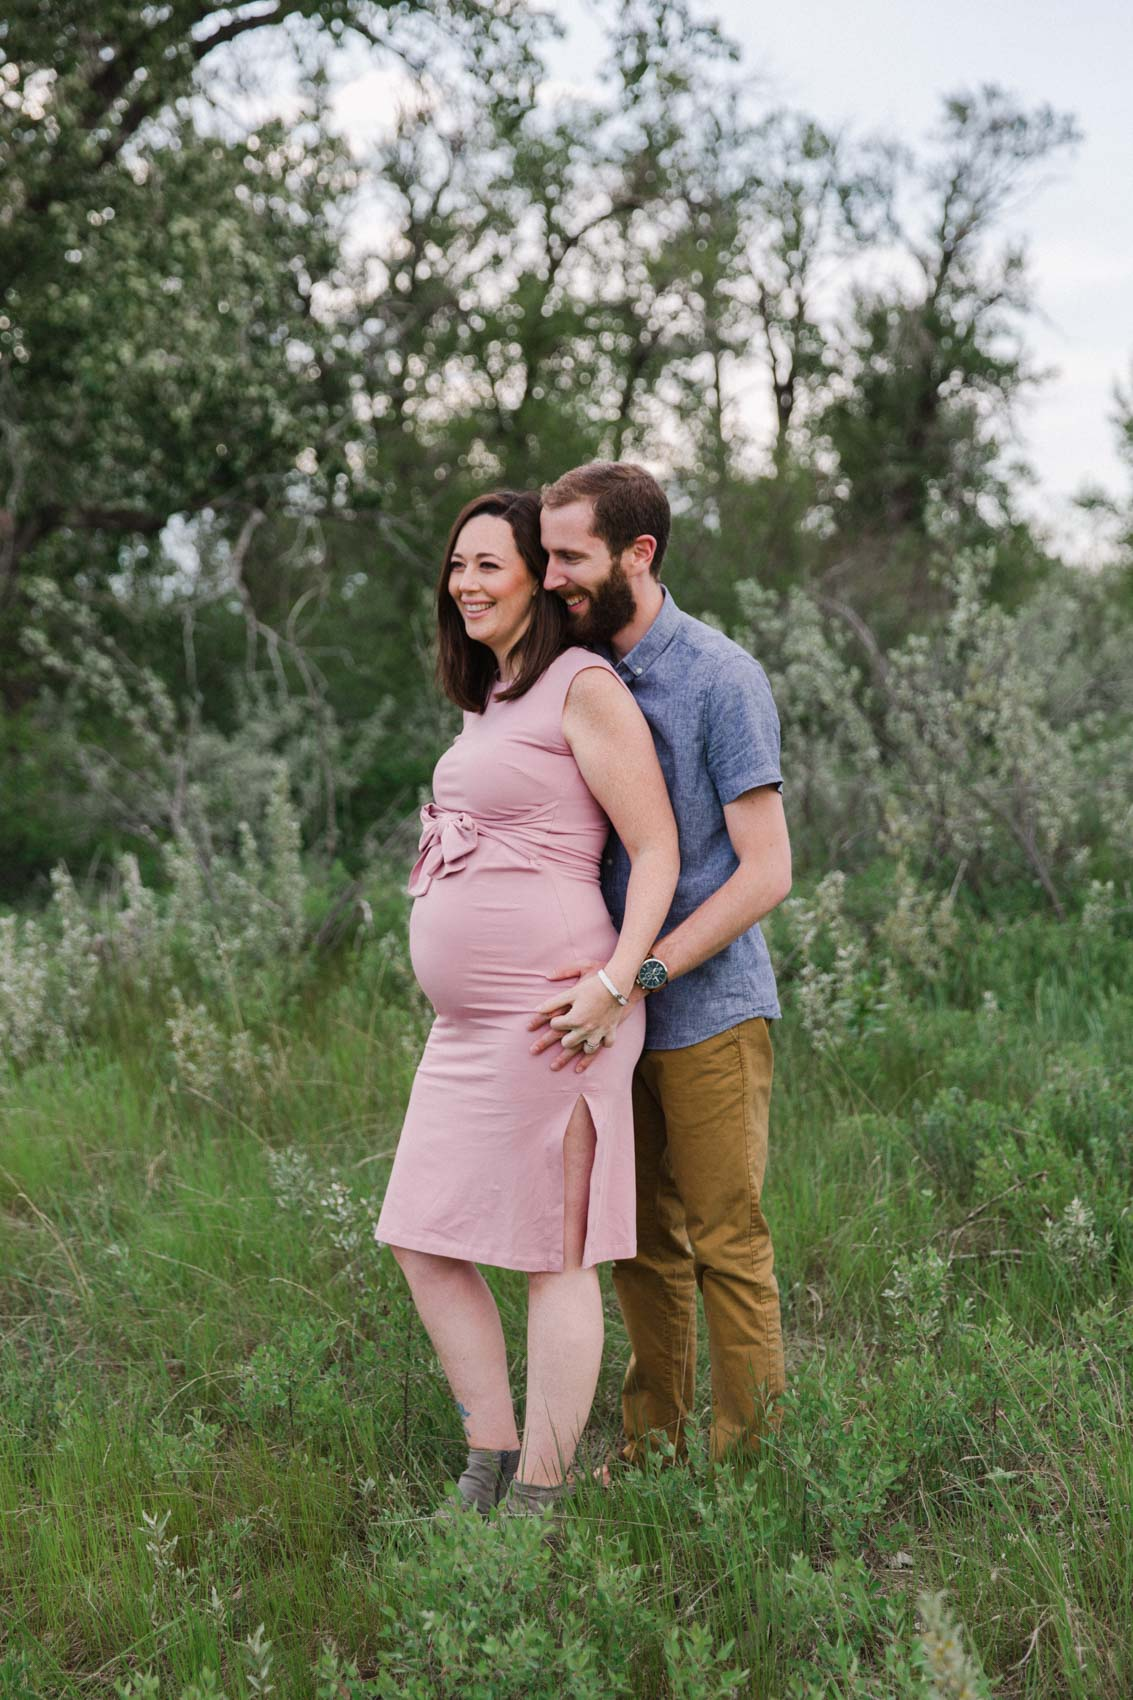 Maternity Photographer Calgary Fine Art Photography Jennie Guenard